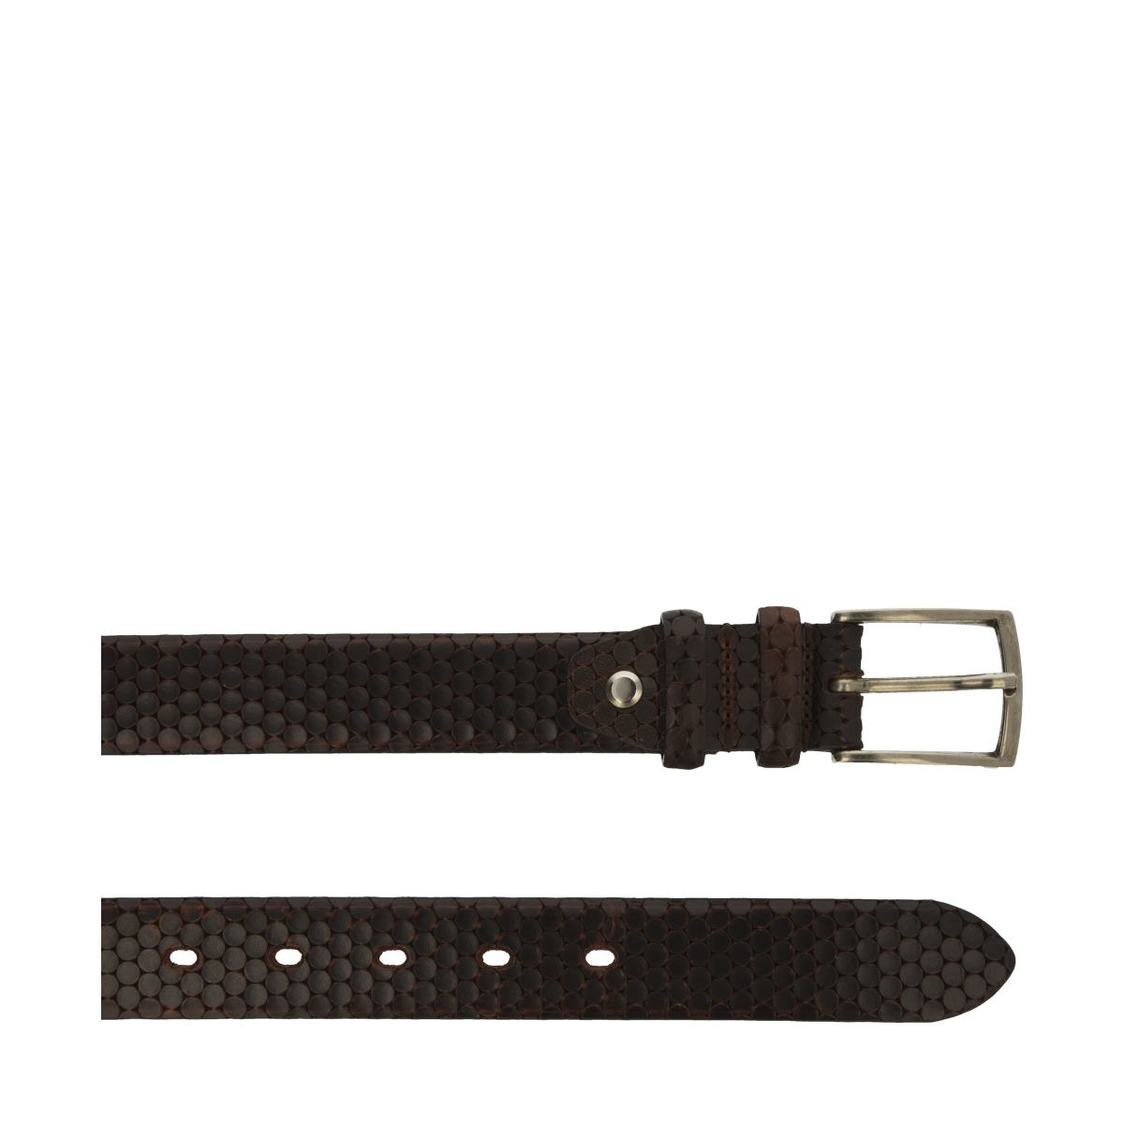 Italian Leather Brown Belts with Golden Buckle